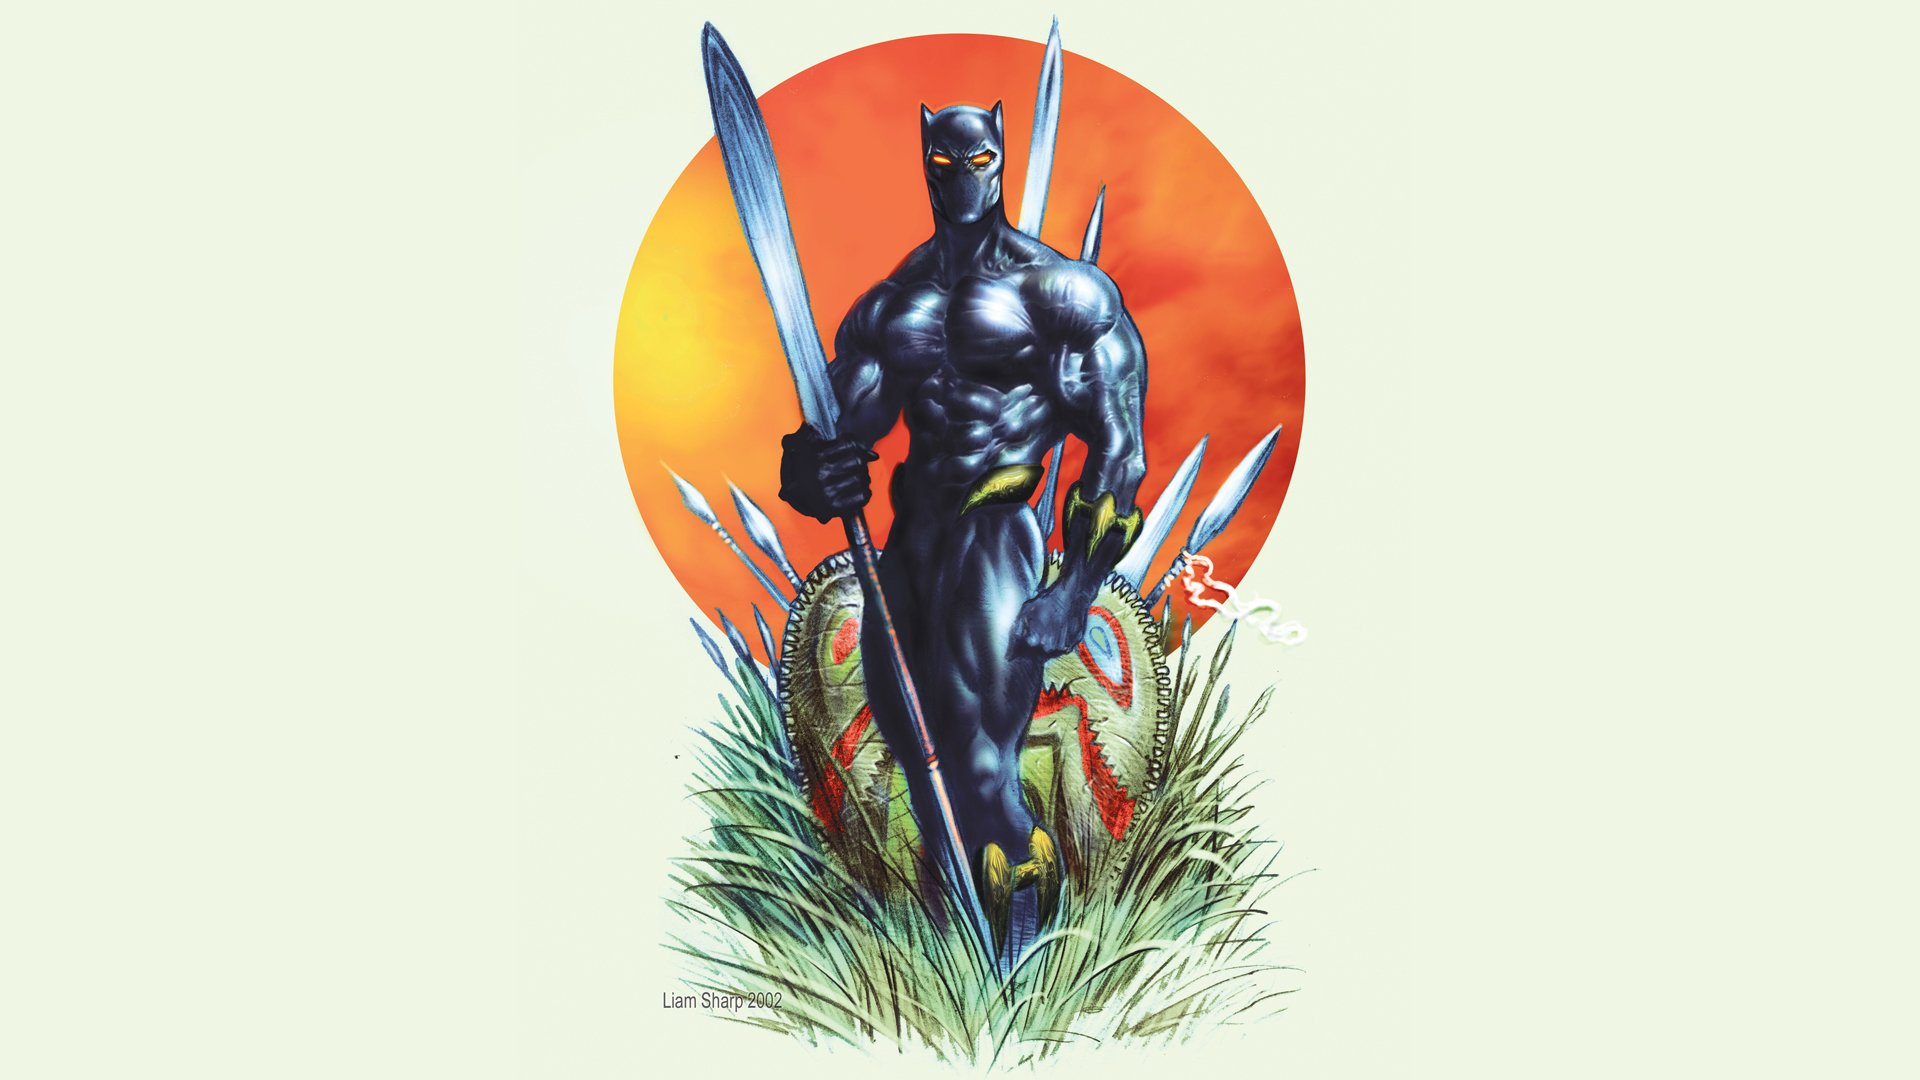 Black Panther Wallpaper Marvel: Black Panther Full HD Wallpaper And Background Image